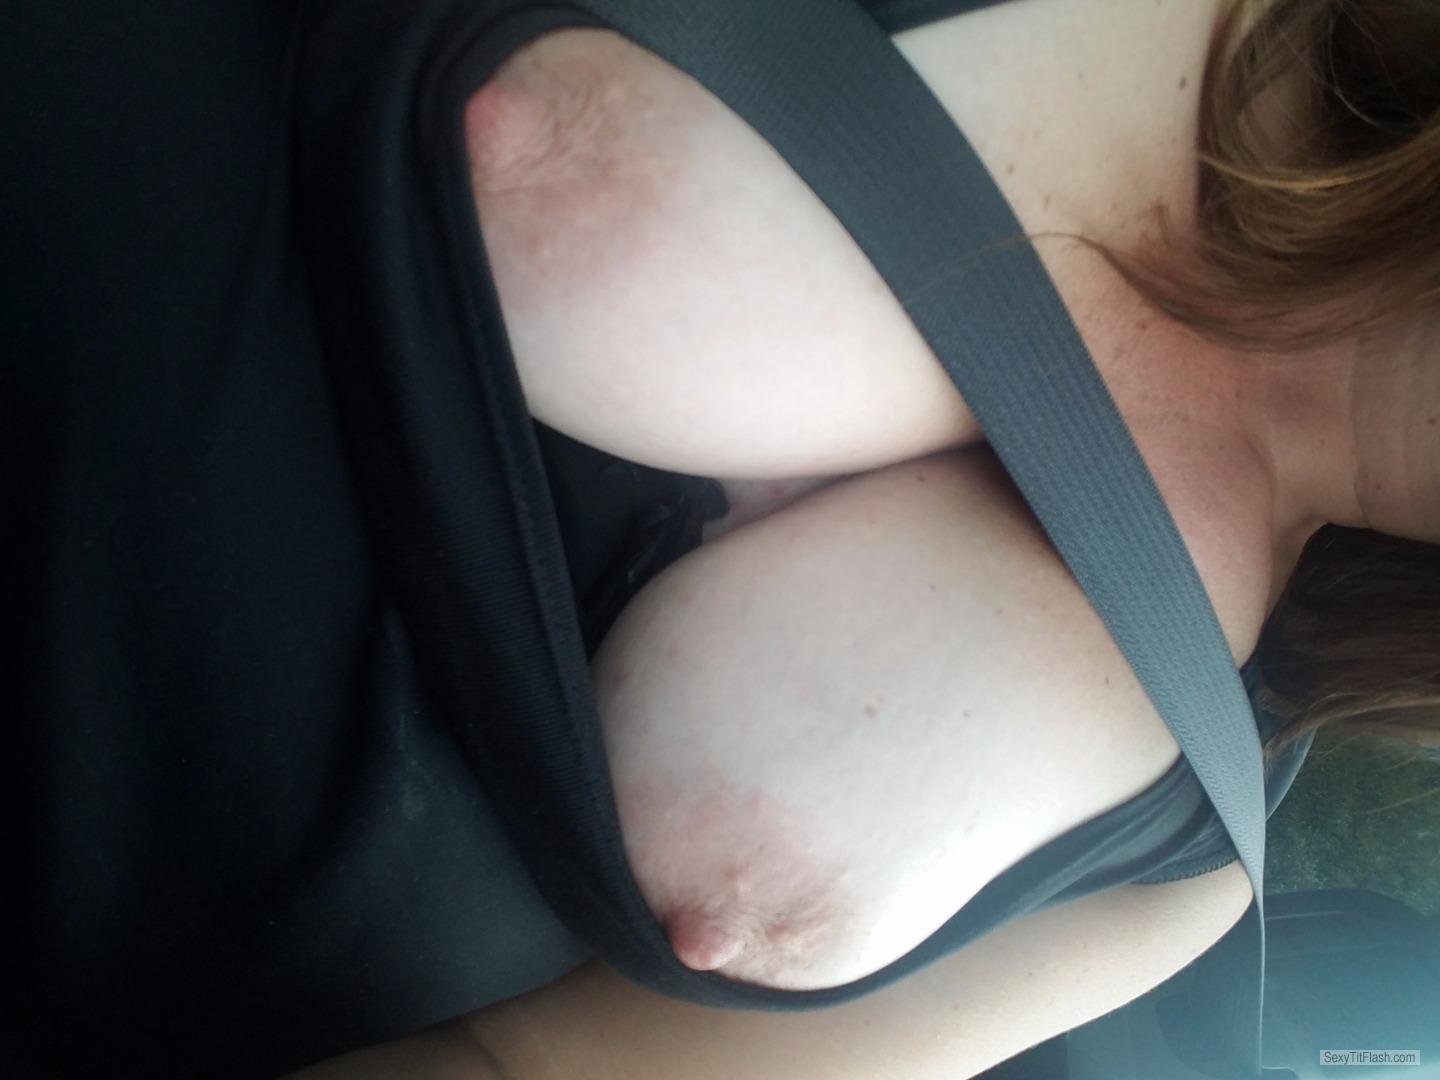 Tit Flash: My Medium Tits (Selfie) - Copper111 from United States